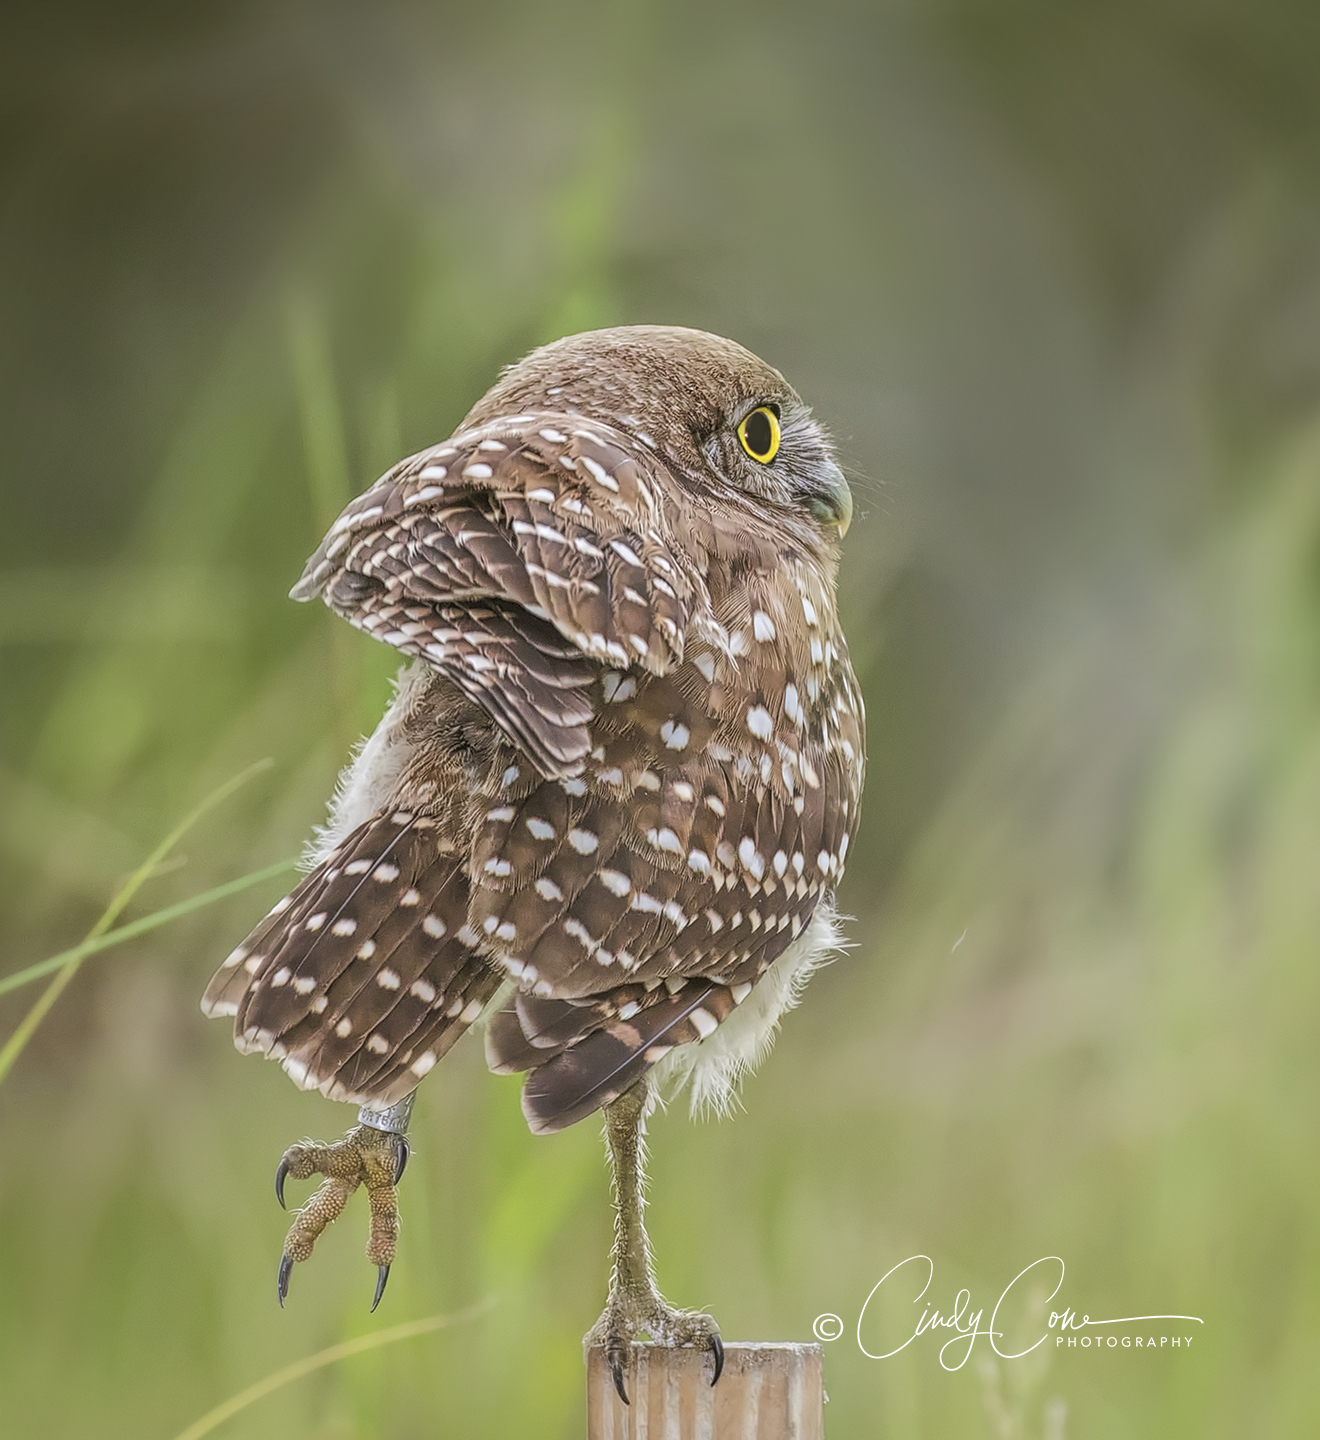 Cape Coral burrowing owl balancing on a post.